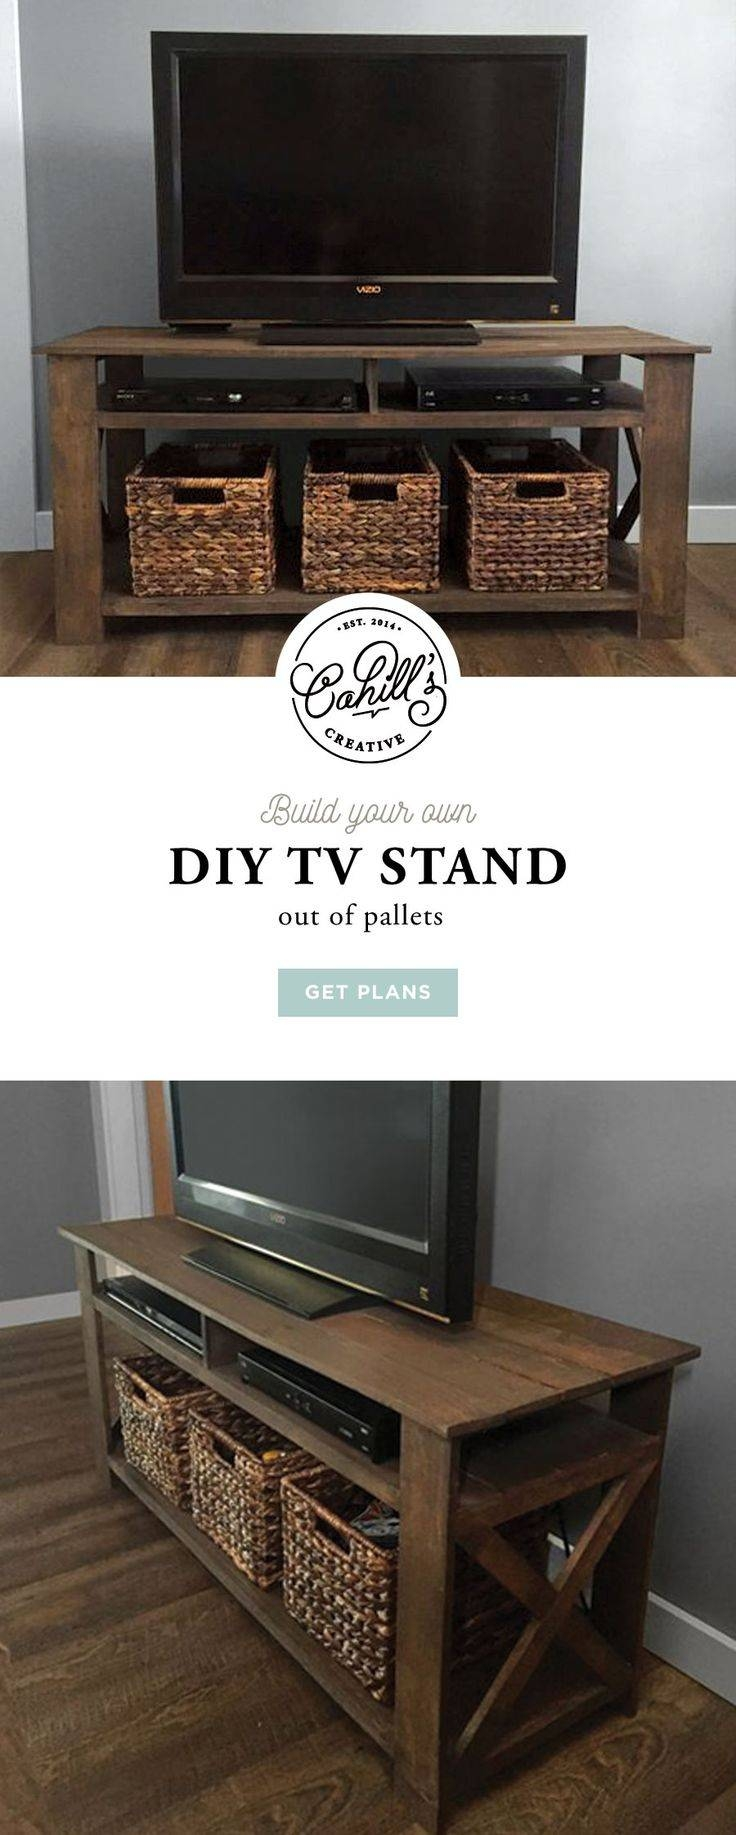 Best 25+ Small Tv Stand Ideas On Pinterest | Rustic Tv Stands within Tv Stands for Small Spaces (Image 4 of 15)